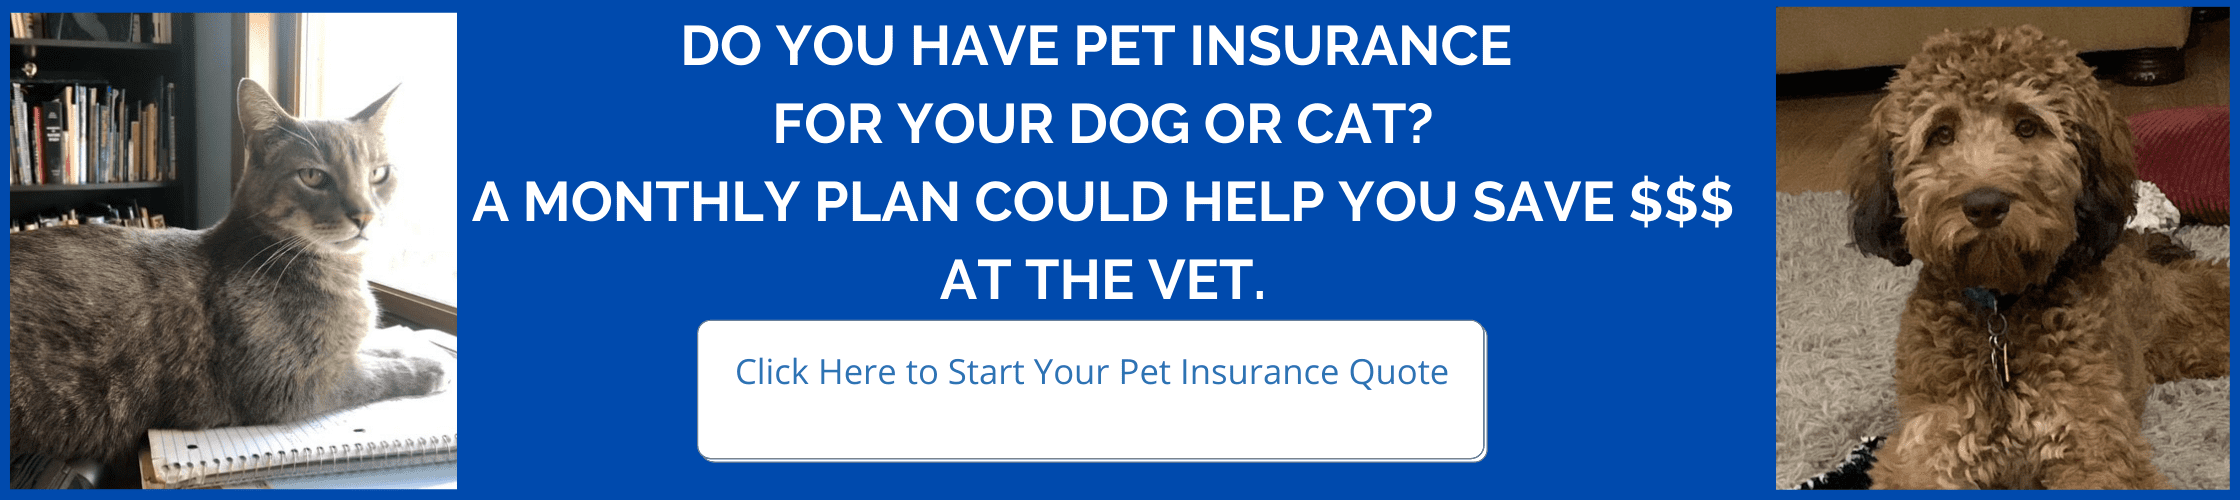 Get a pet insurance quote!